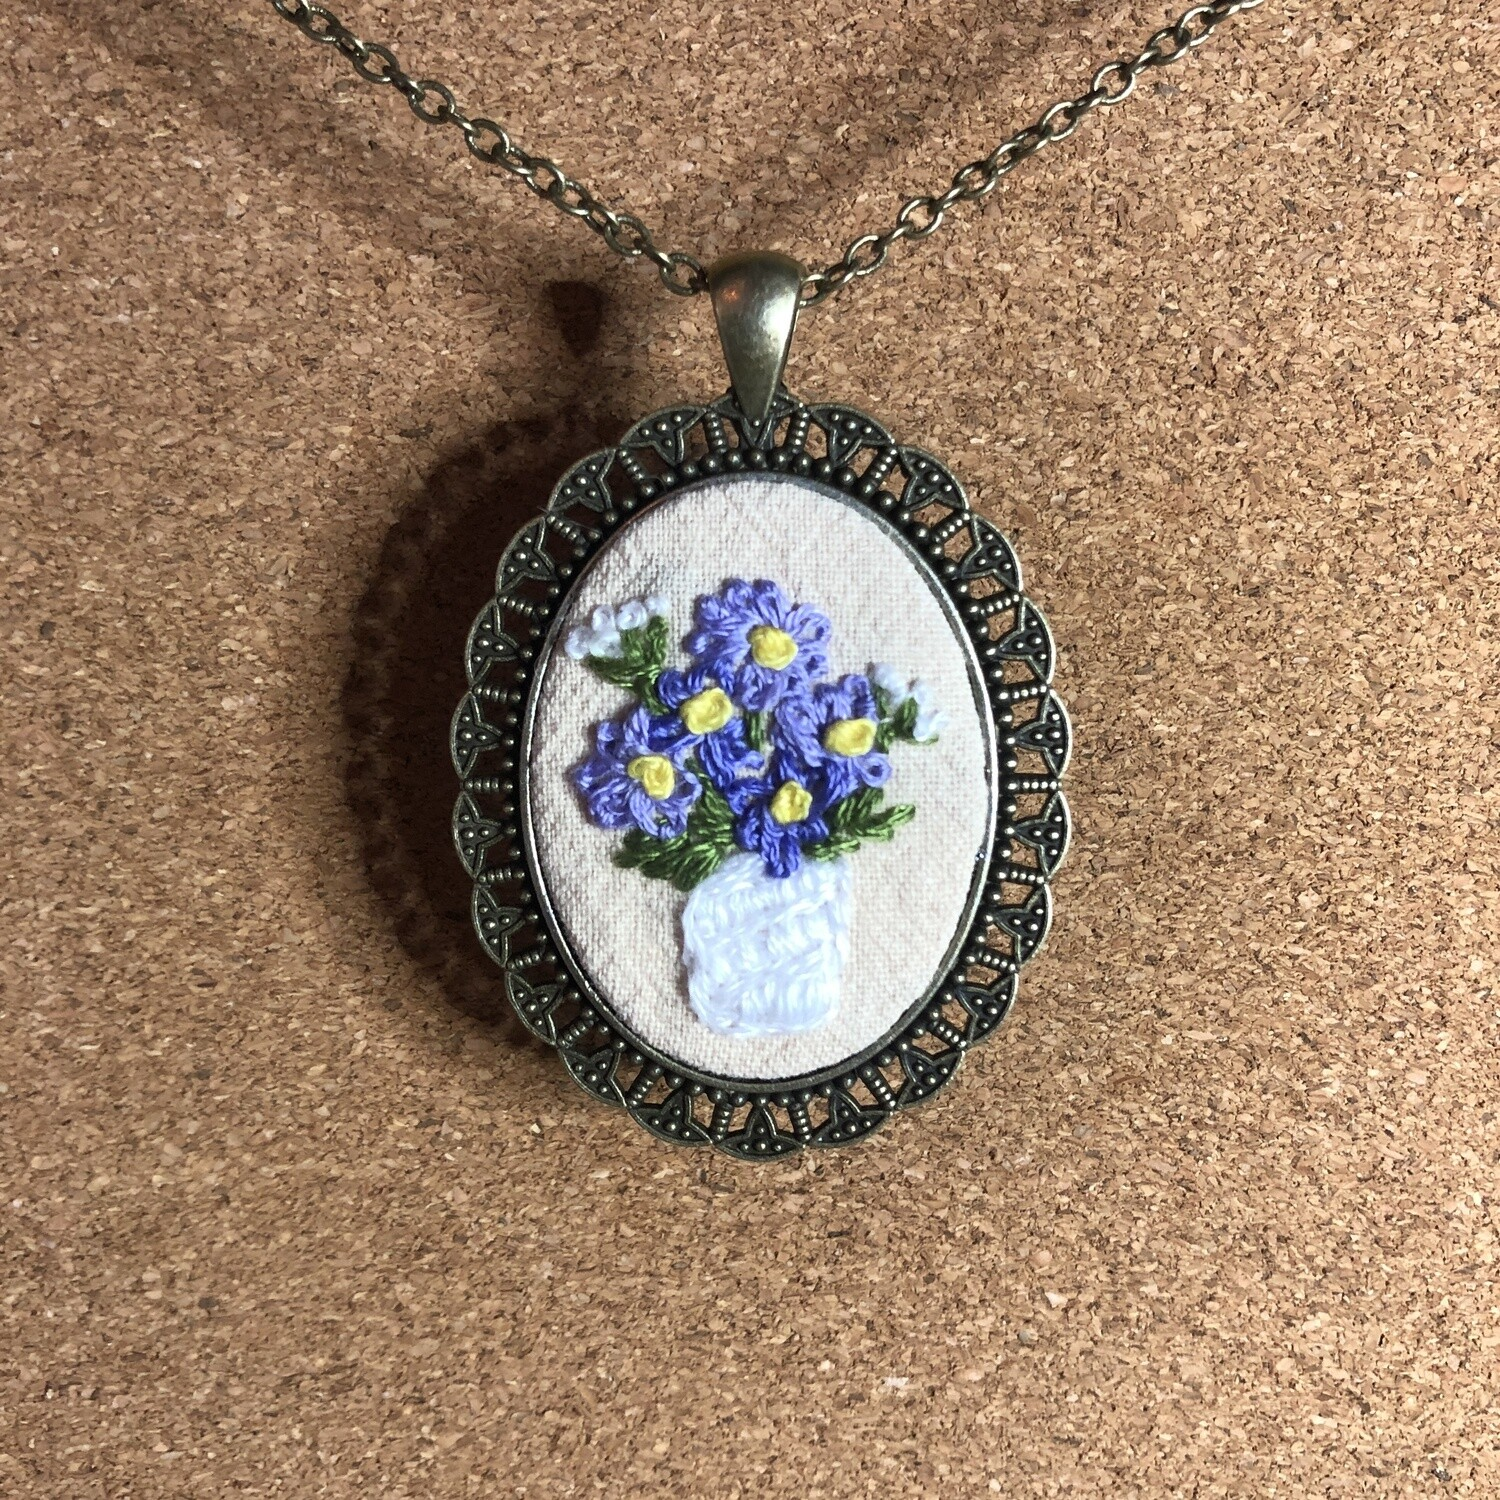 Purple Pansy Embroidered Necklace - Pansies Spring Flowers Pendant